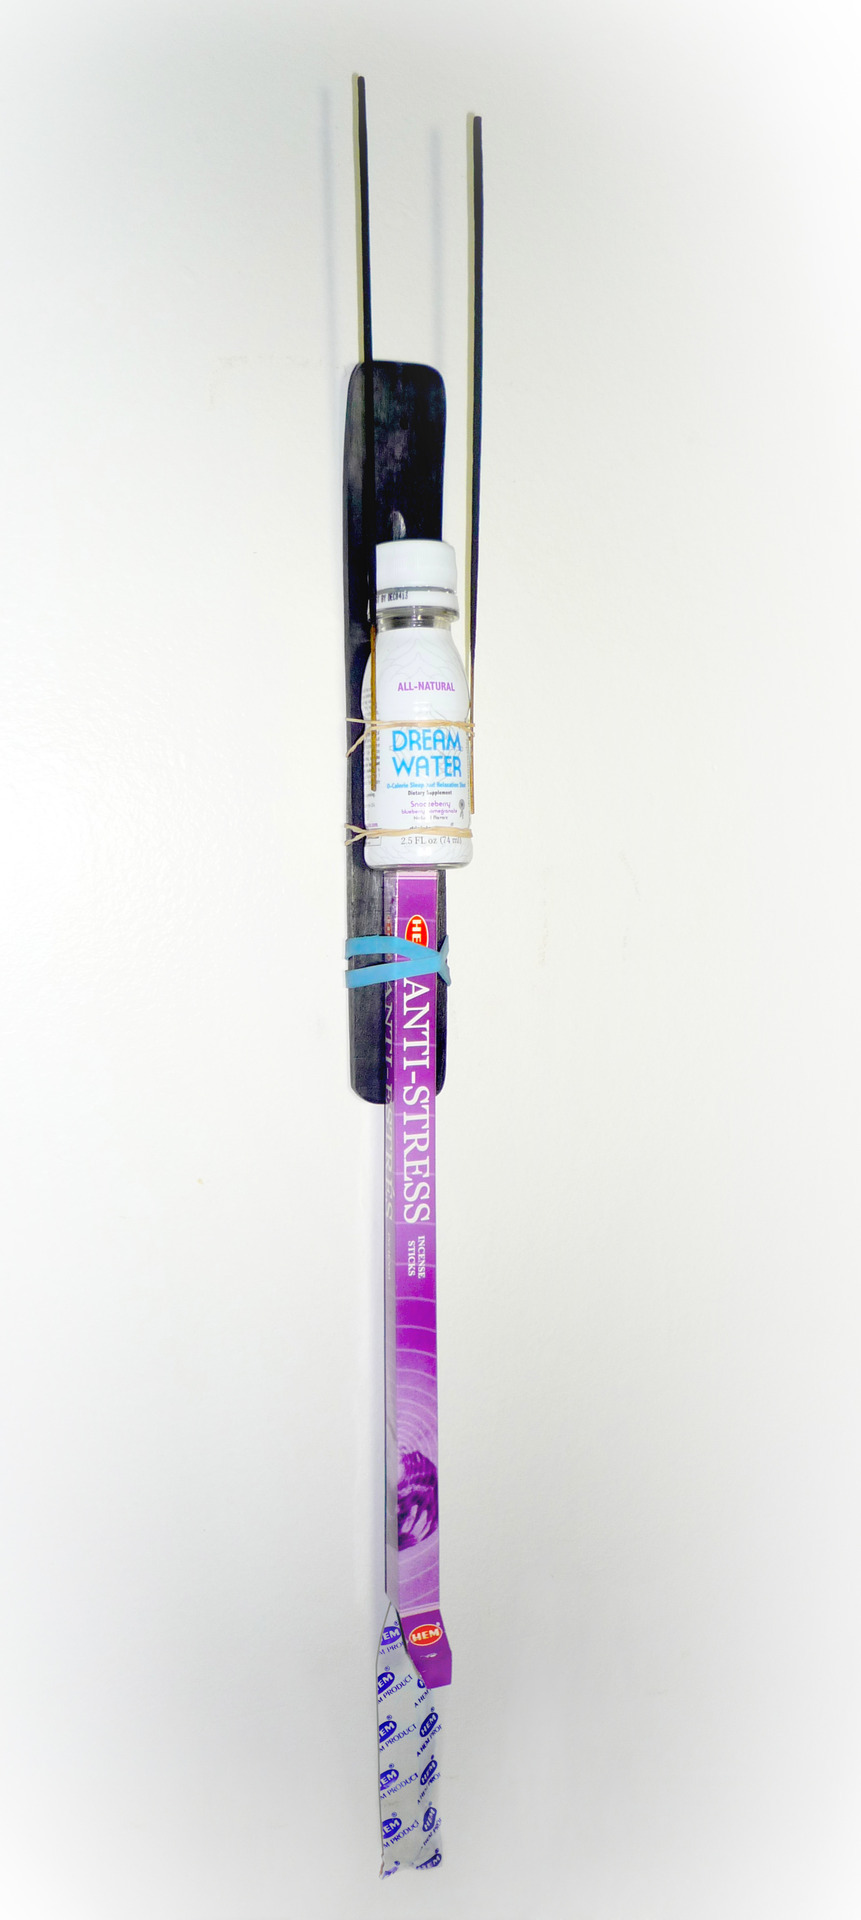 Relaxation Totem; Dream Water (SLEEP EASY) and ANTI-STRESS incense, 2012 Sculptural Remix Ω™